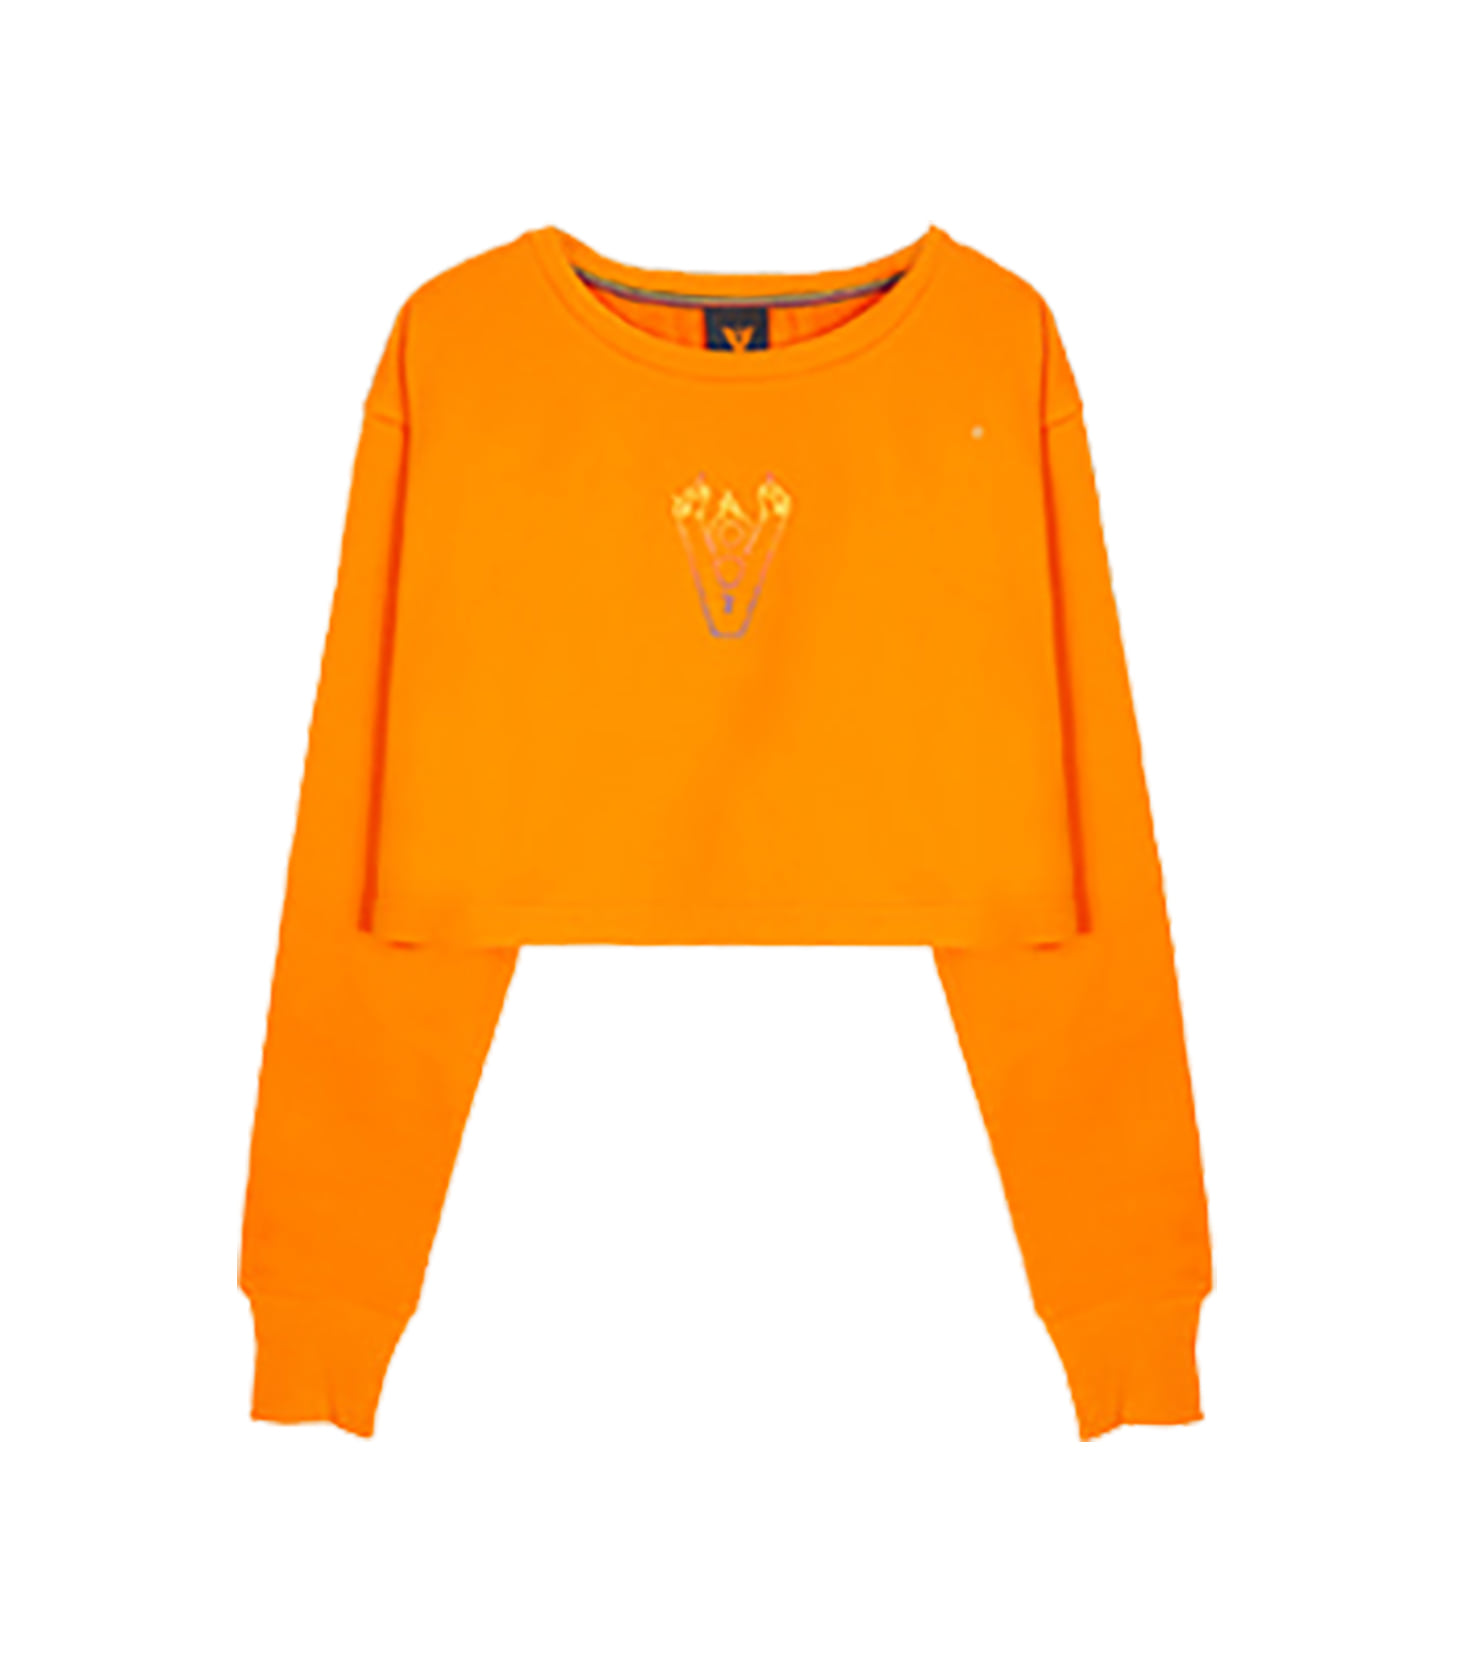 BLAZE LOGO CROP TOP (ORANGE)